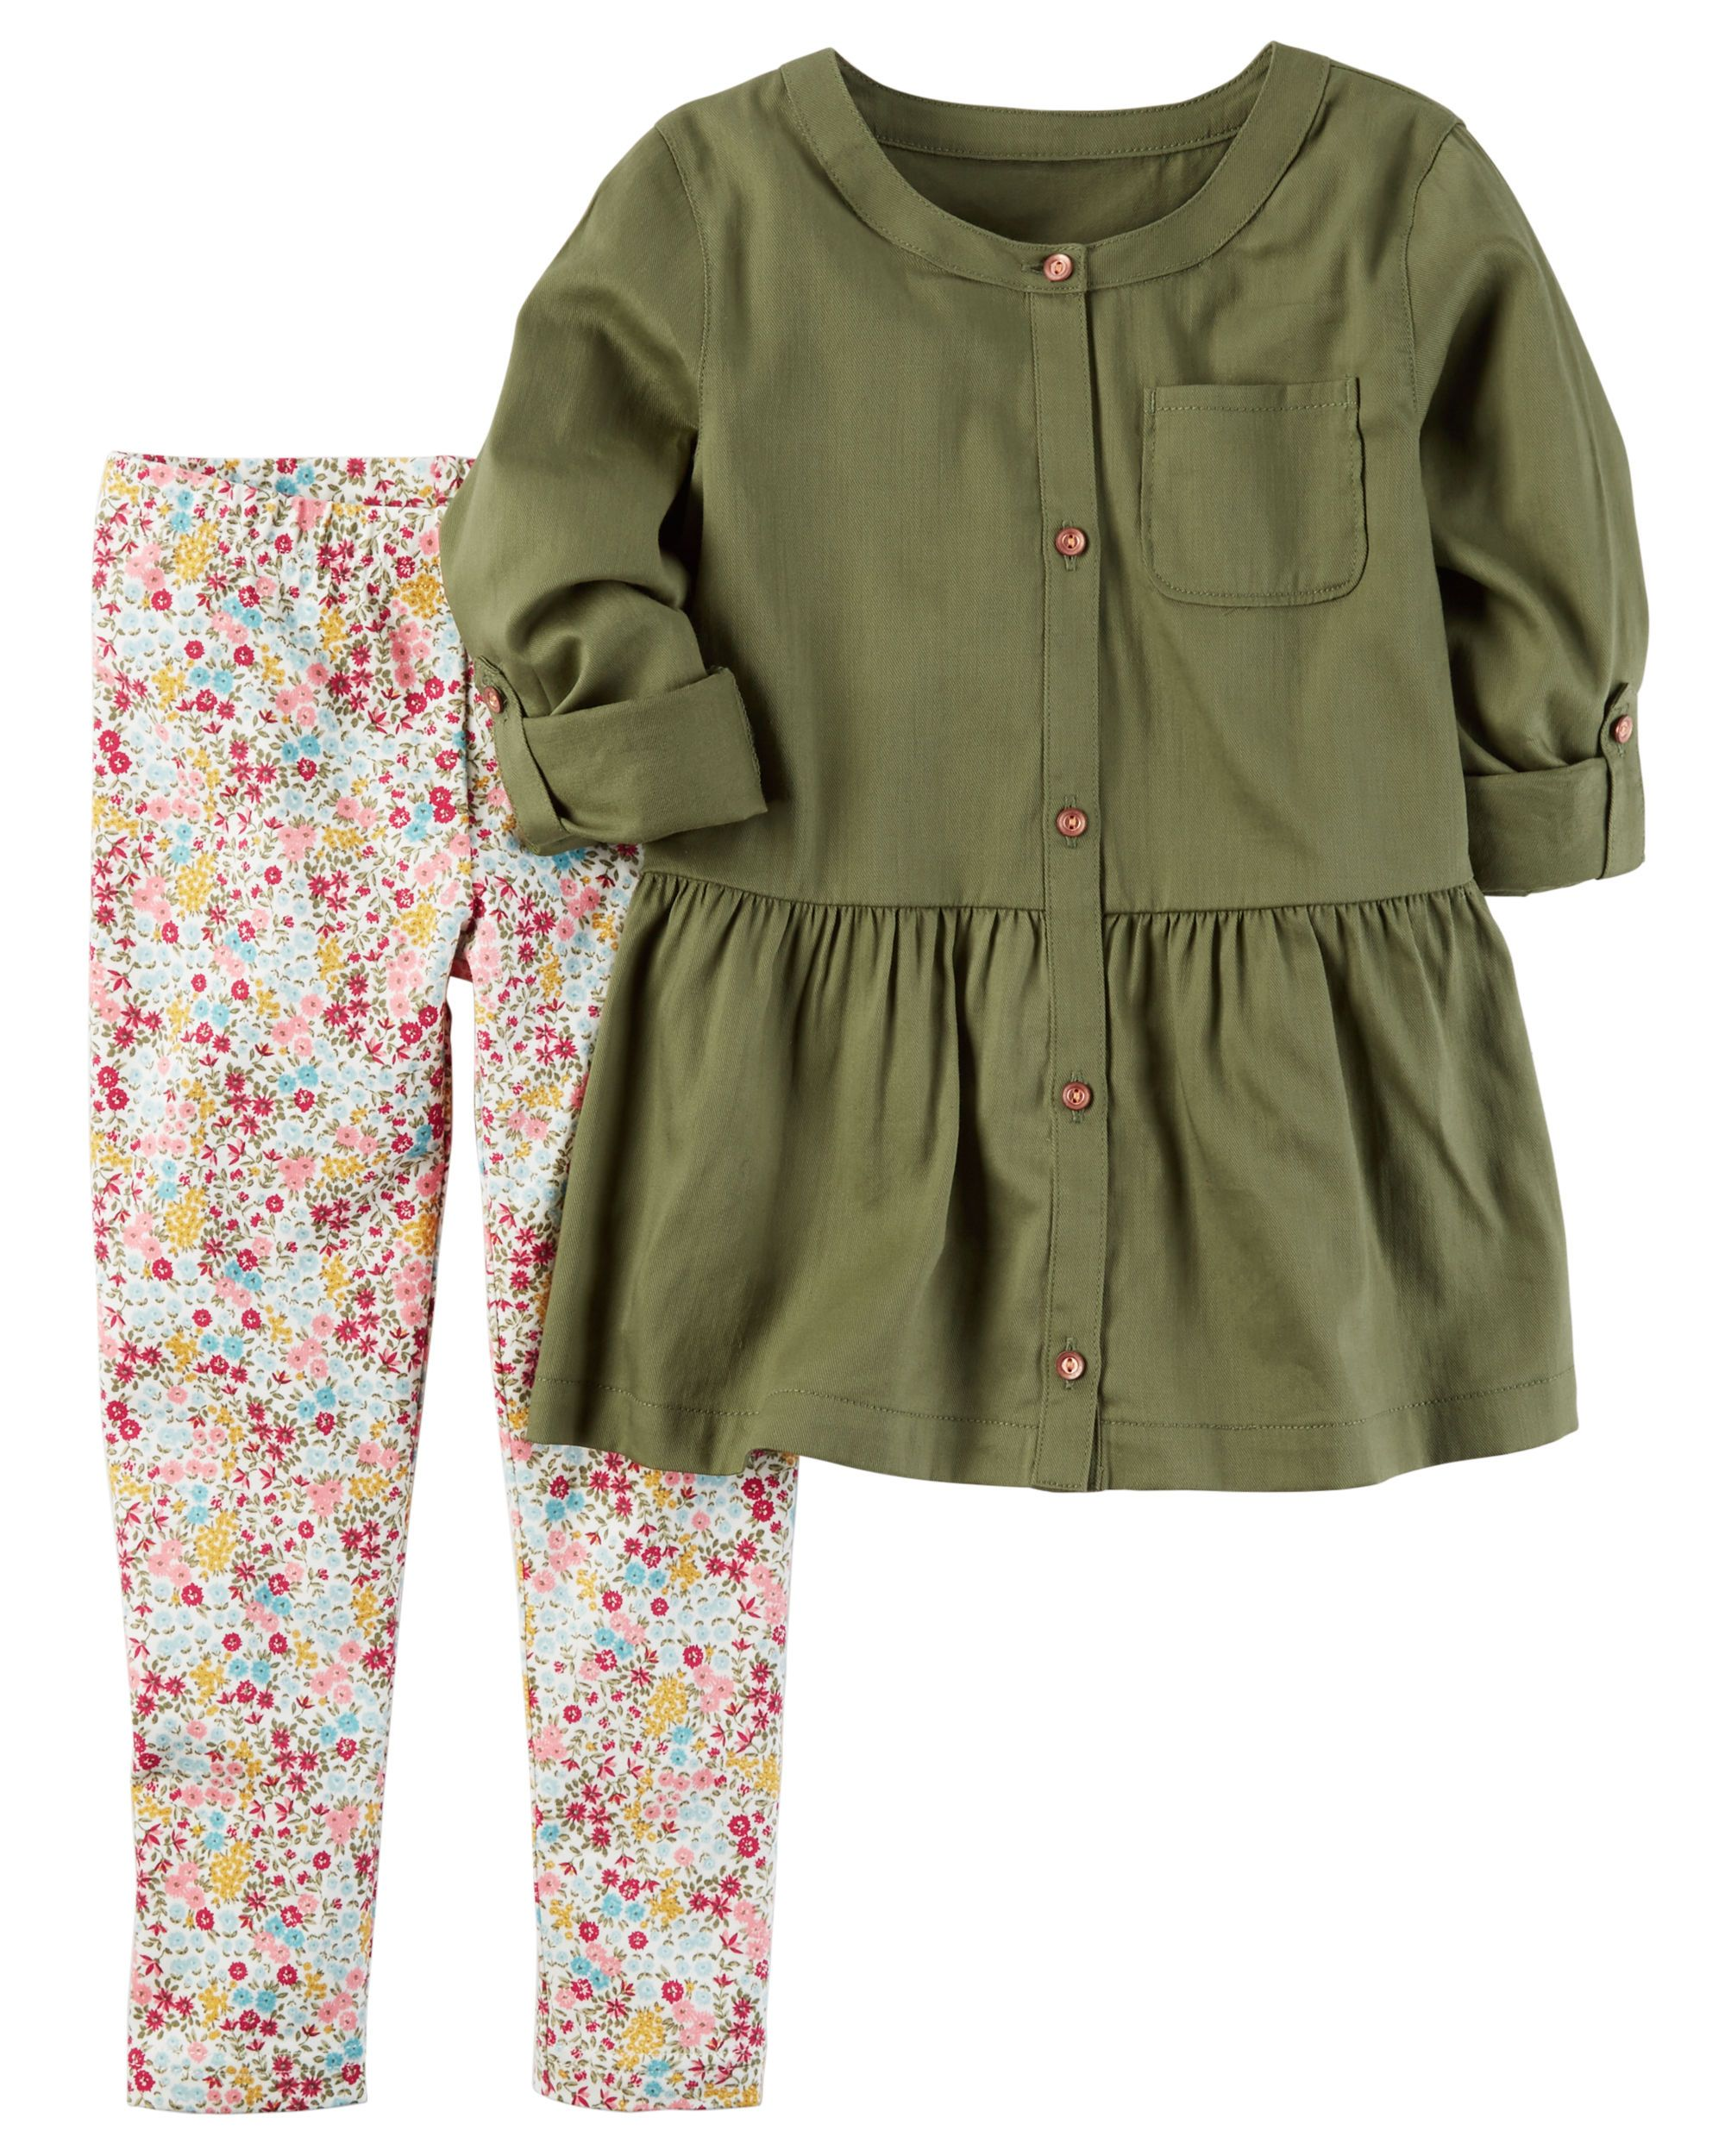 Piece peplum tunic u legging set babies clothes toddler girls